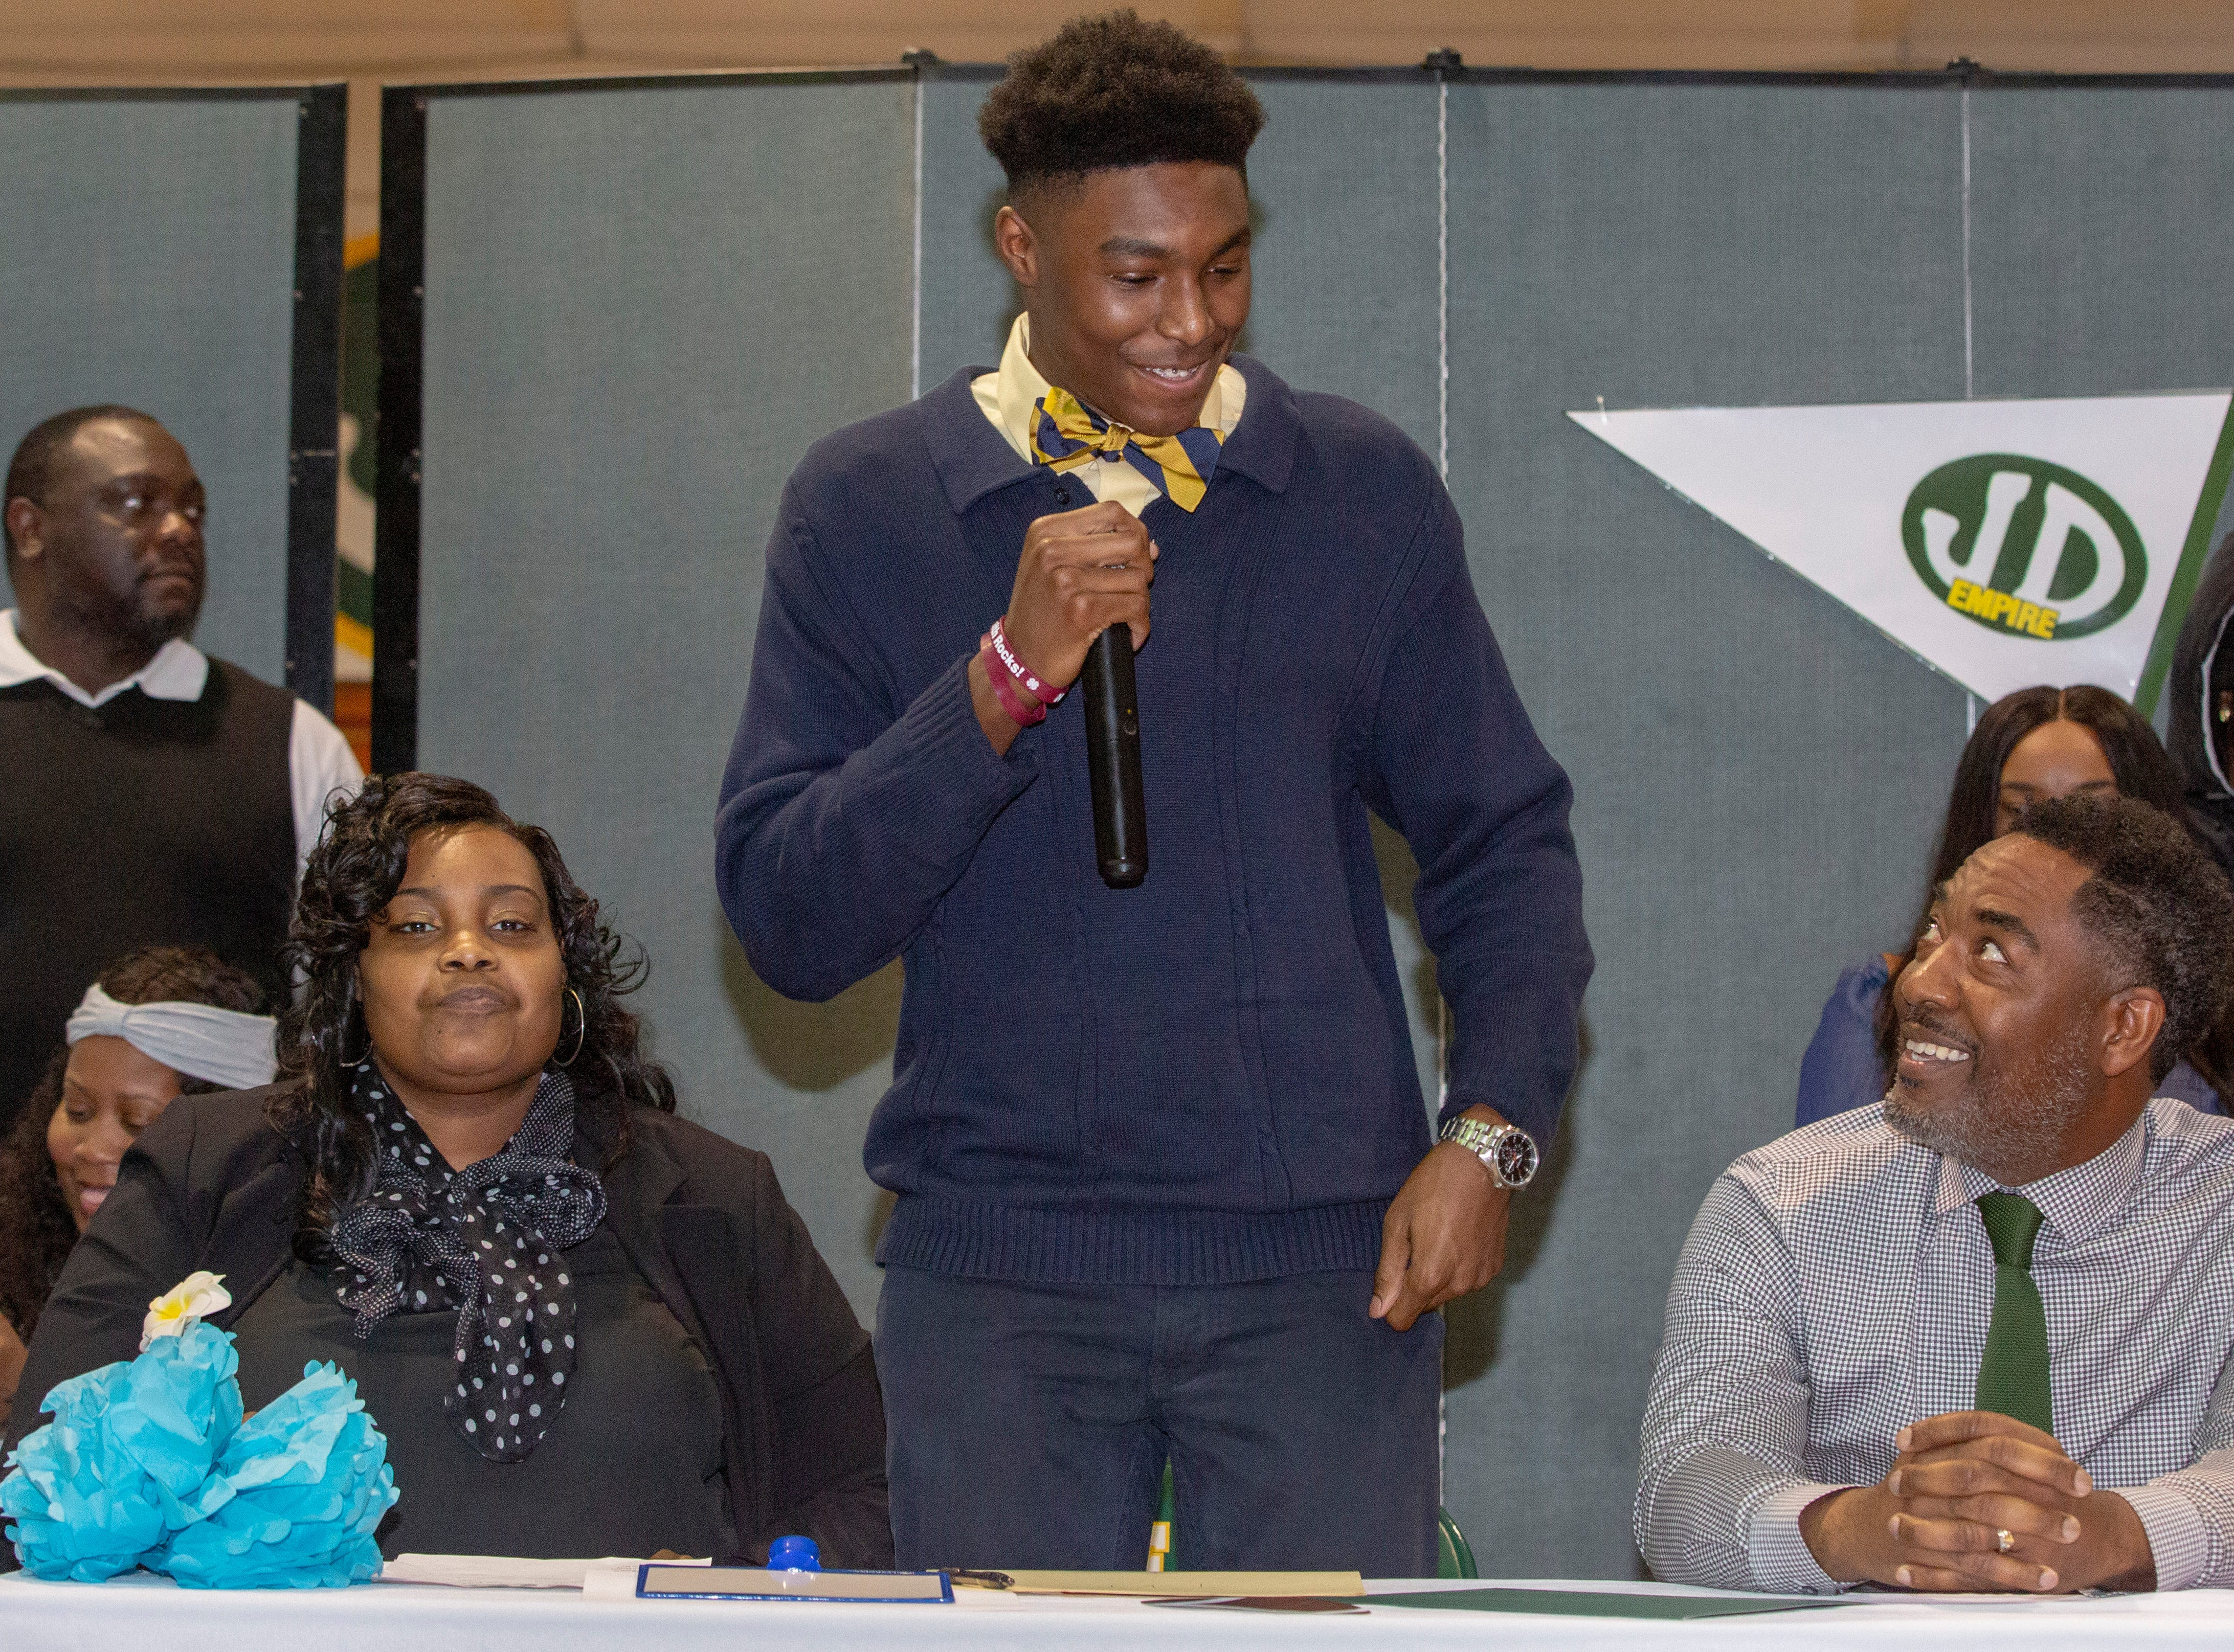 Karon Phillips, with Jeff Davis High School, signed to play football at Tennessee Valley.